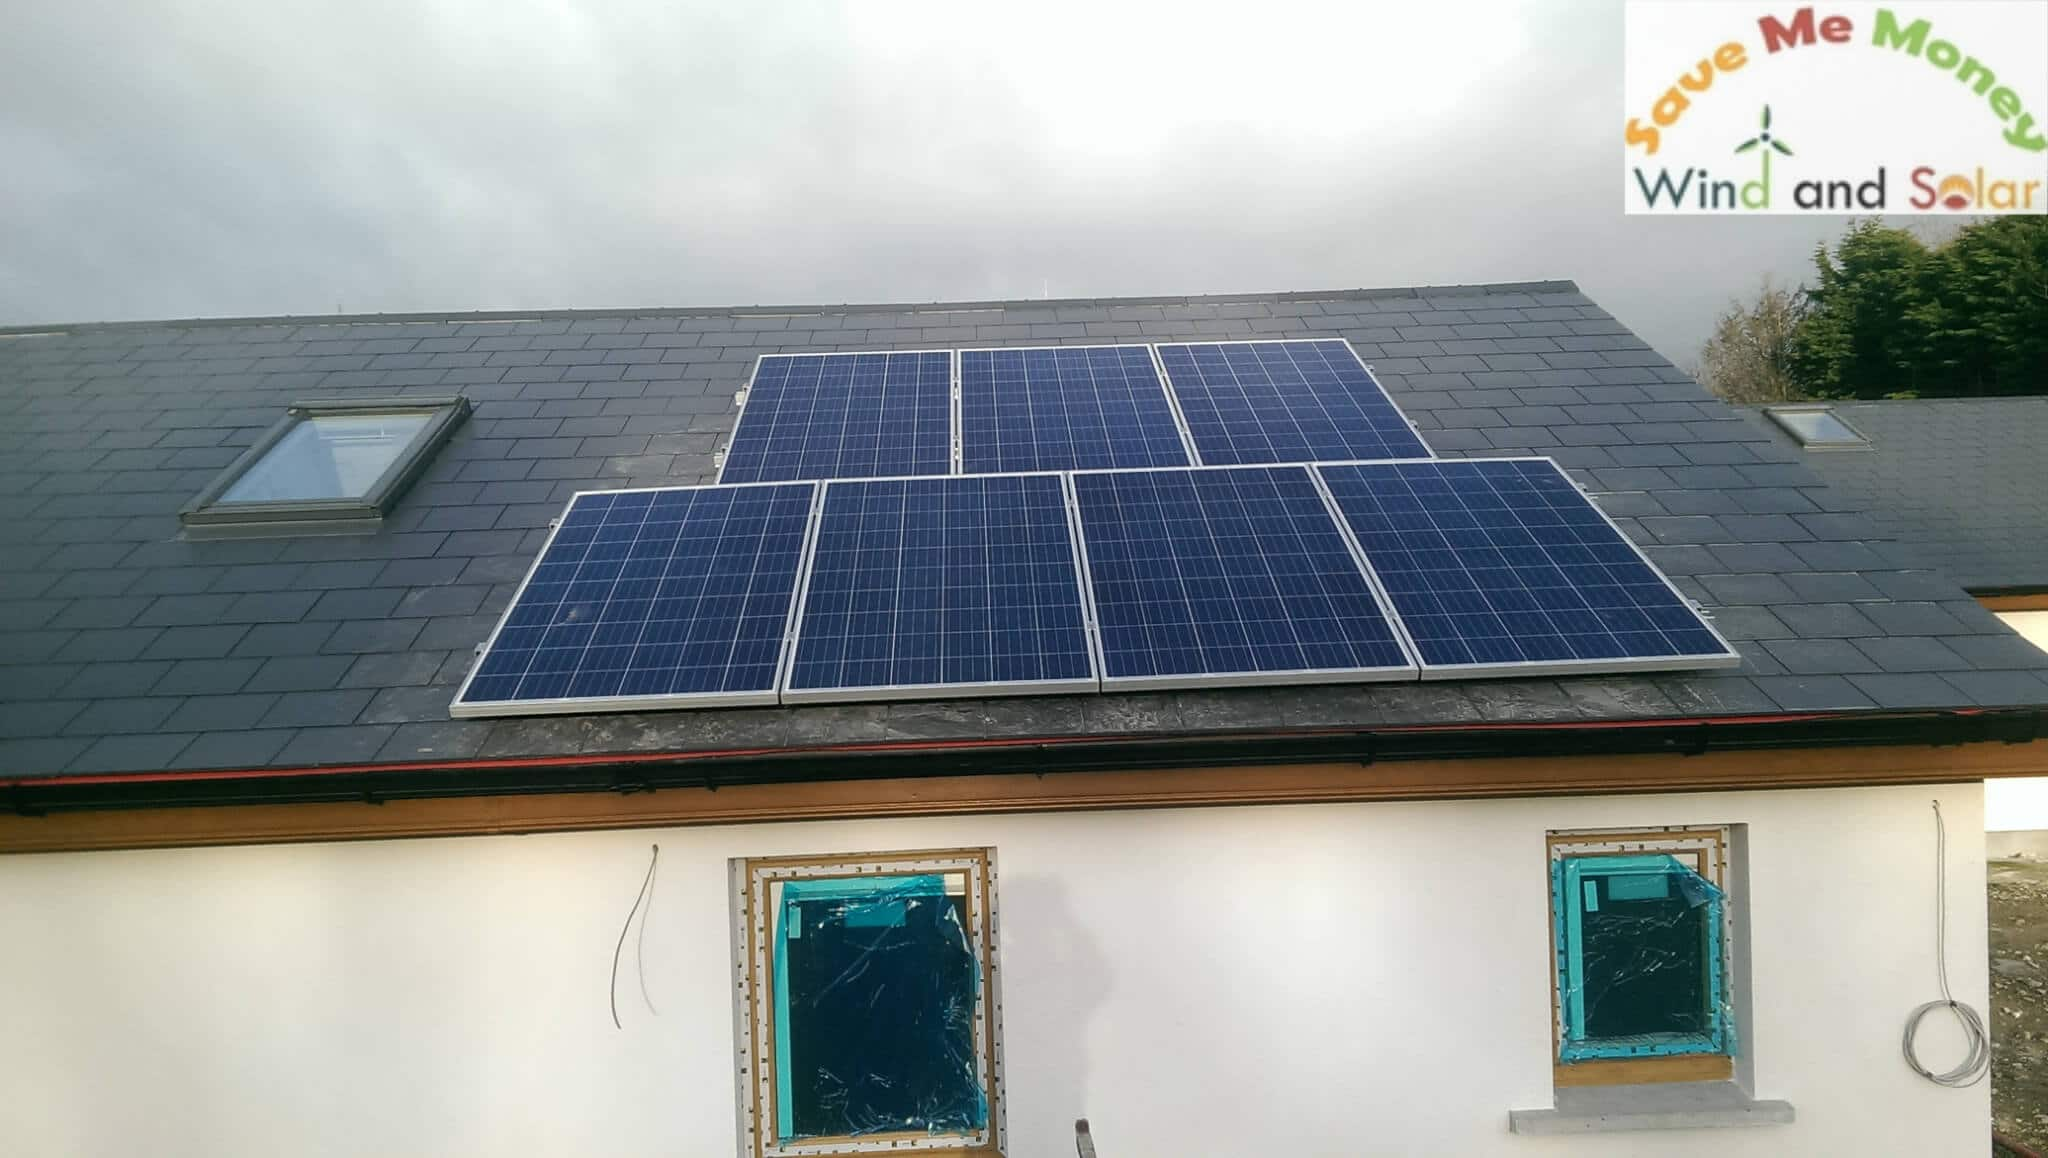 2.0kWP Solax Solar PV System Installation in Waterford